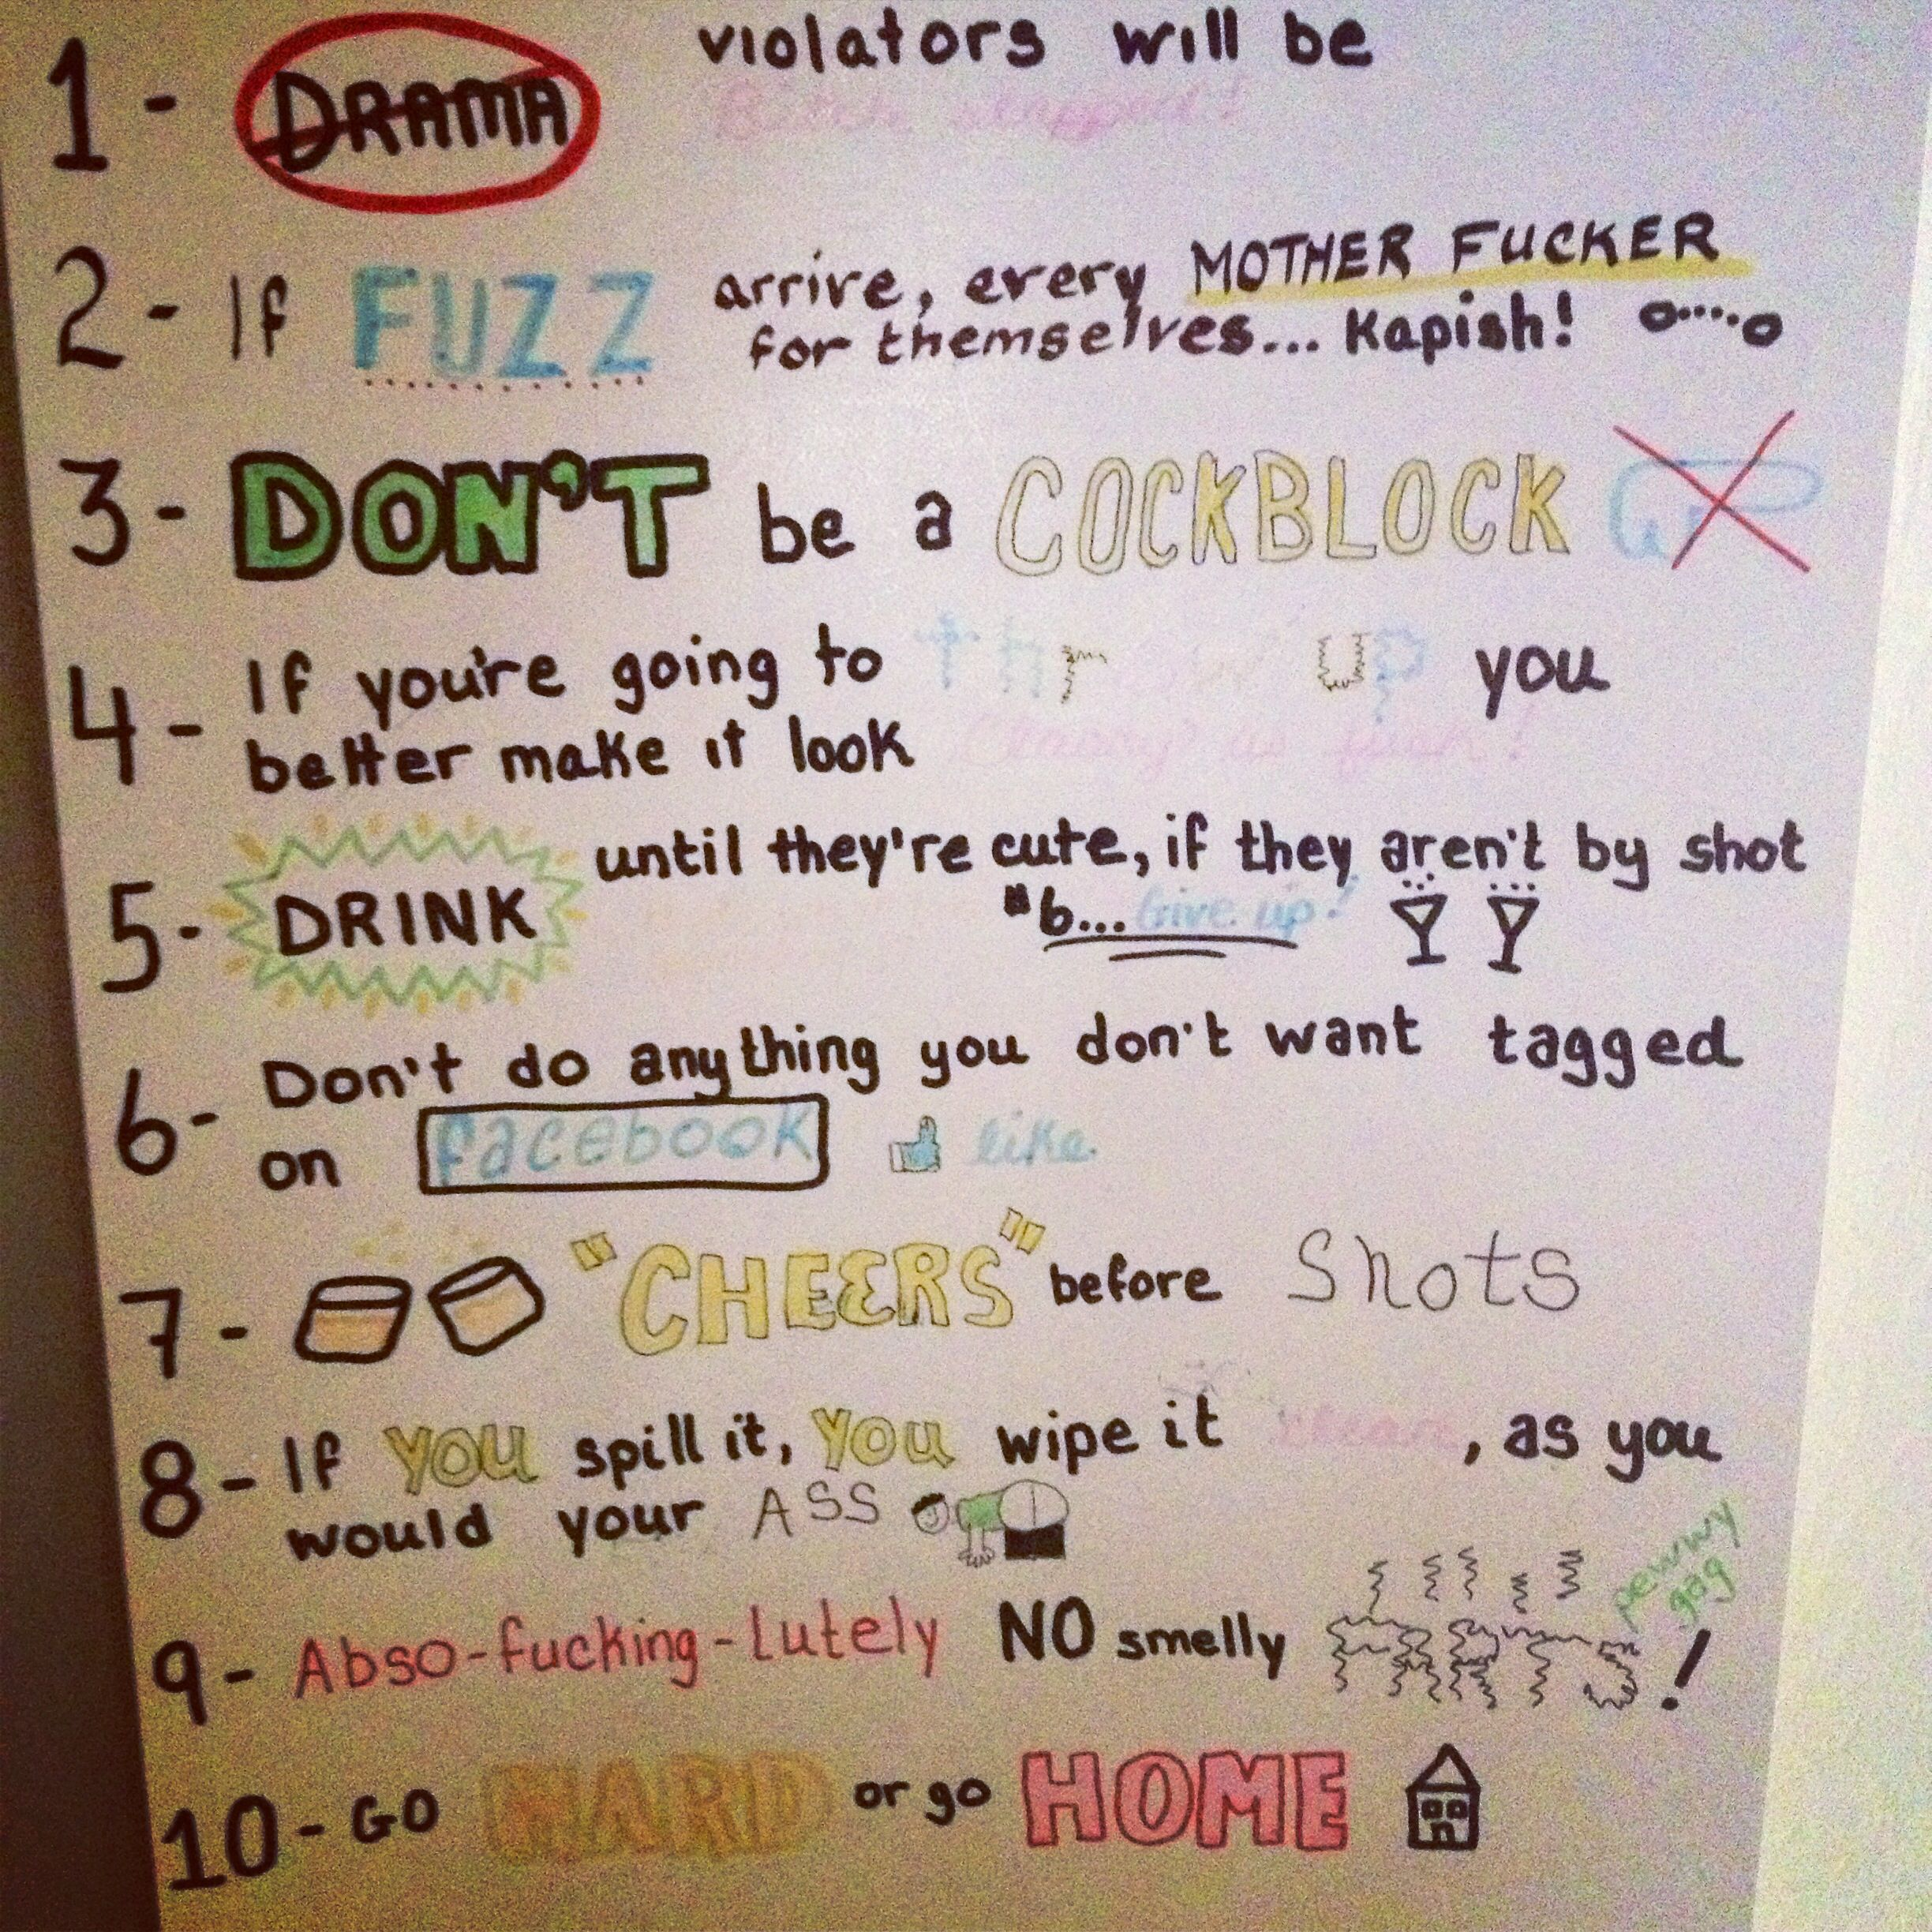 House Party Rules. Why I Hate 'em